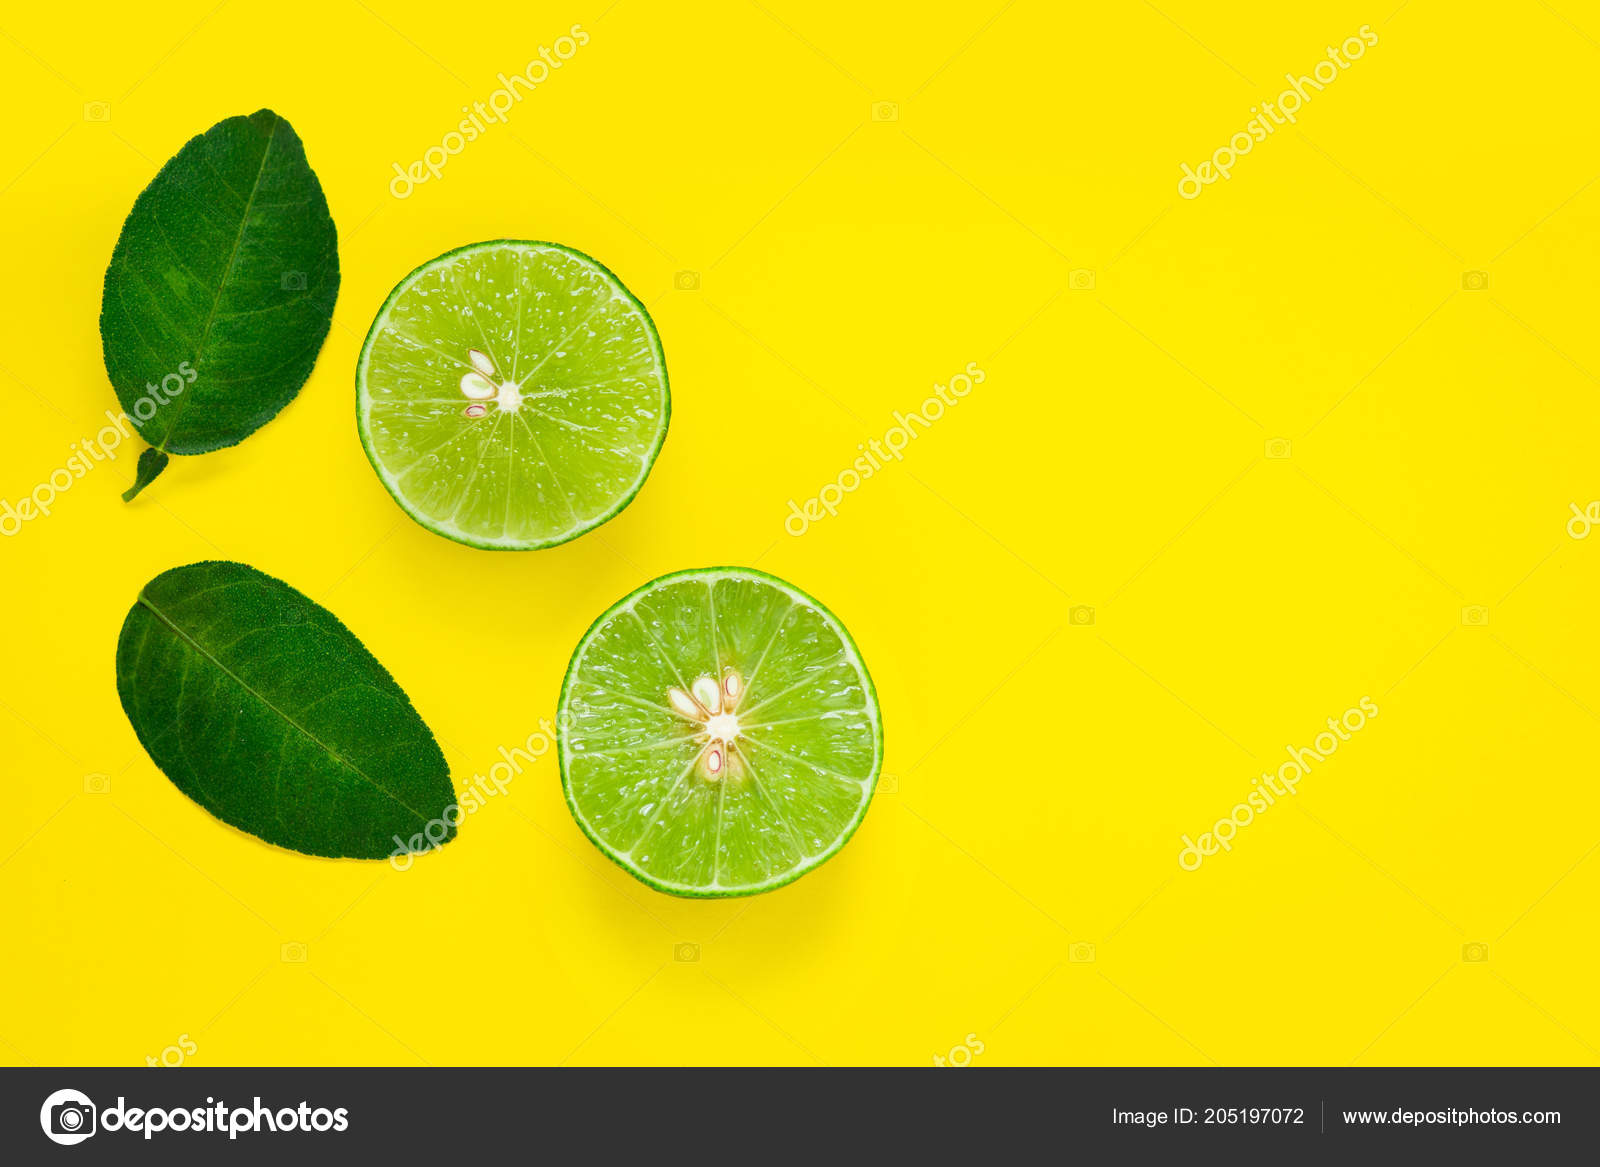 background lemon yellow green lemon yellow background stock photo c rachenbuosa gmail com 205197072 https depositphotos com 205197072 stock photo green lemon yellow background html